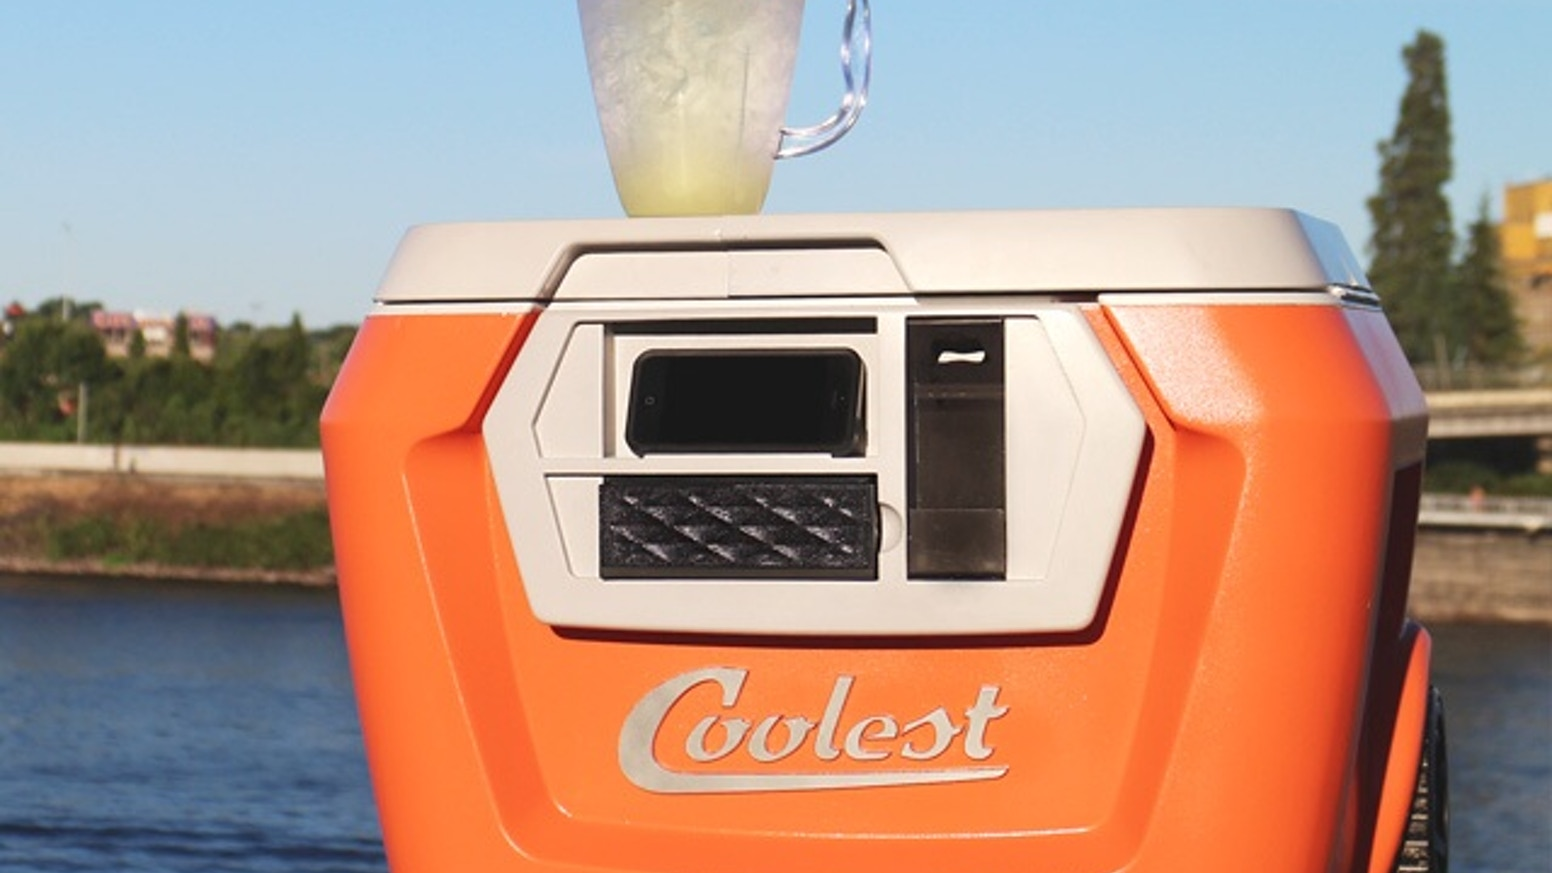 coolest cooler 21st century cooler that s actually cooler by ryan